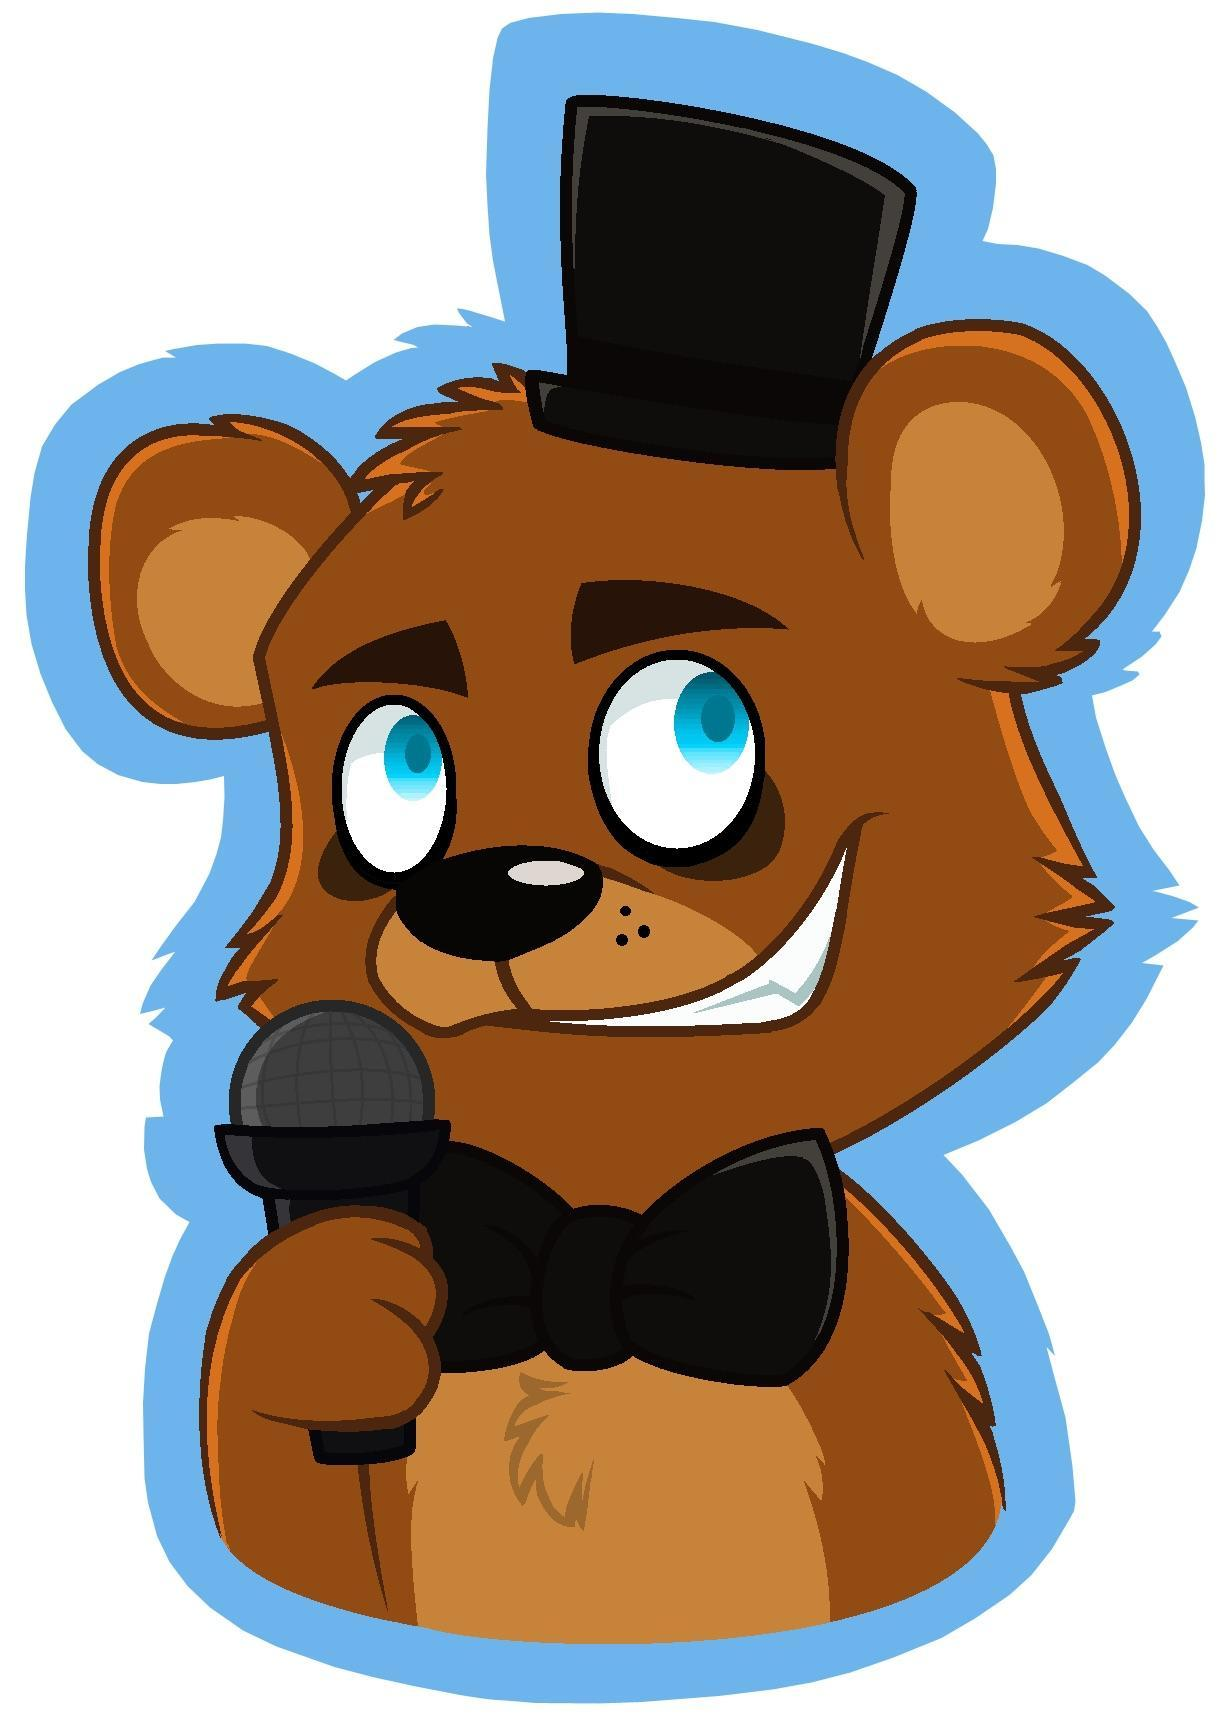 Animated freddy